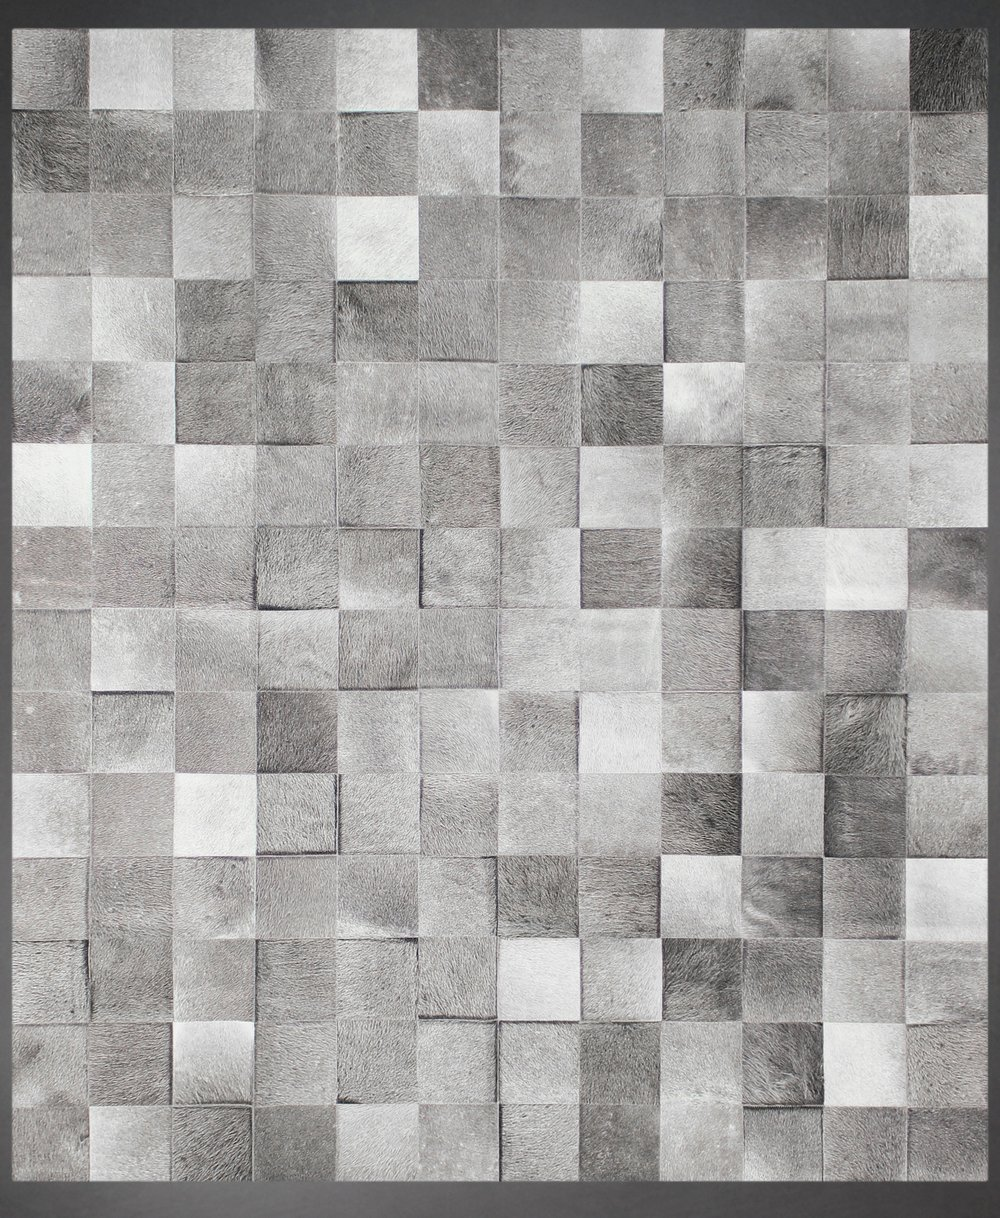 Contemporary designed fur rug in a square pattern in grays and browns.